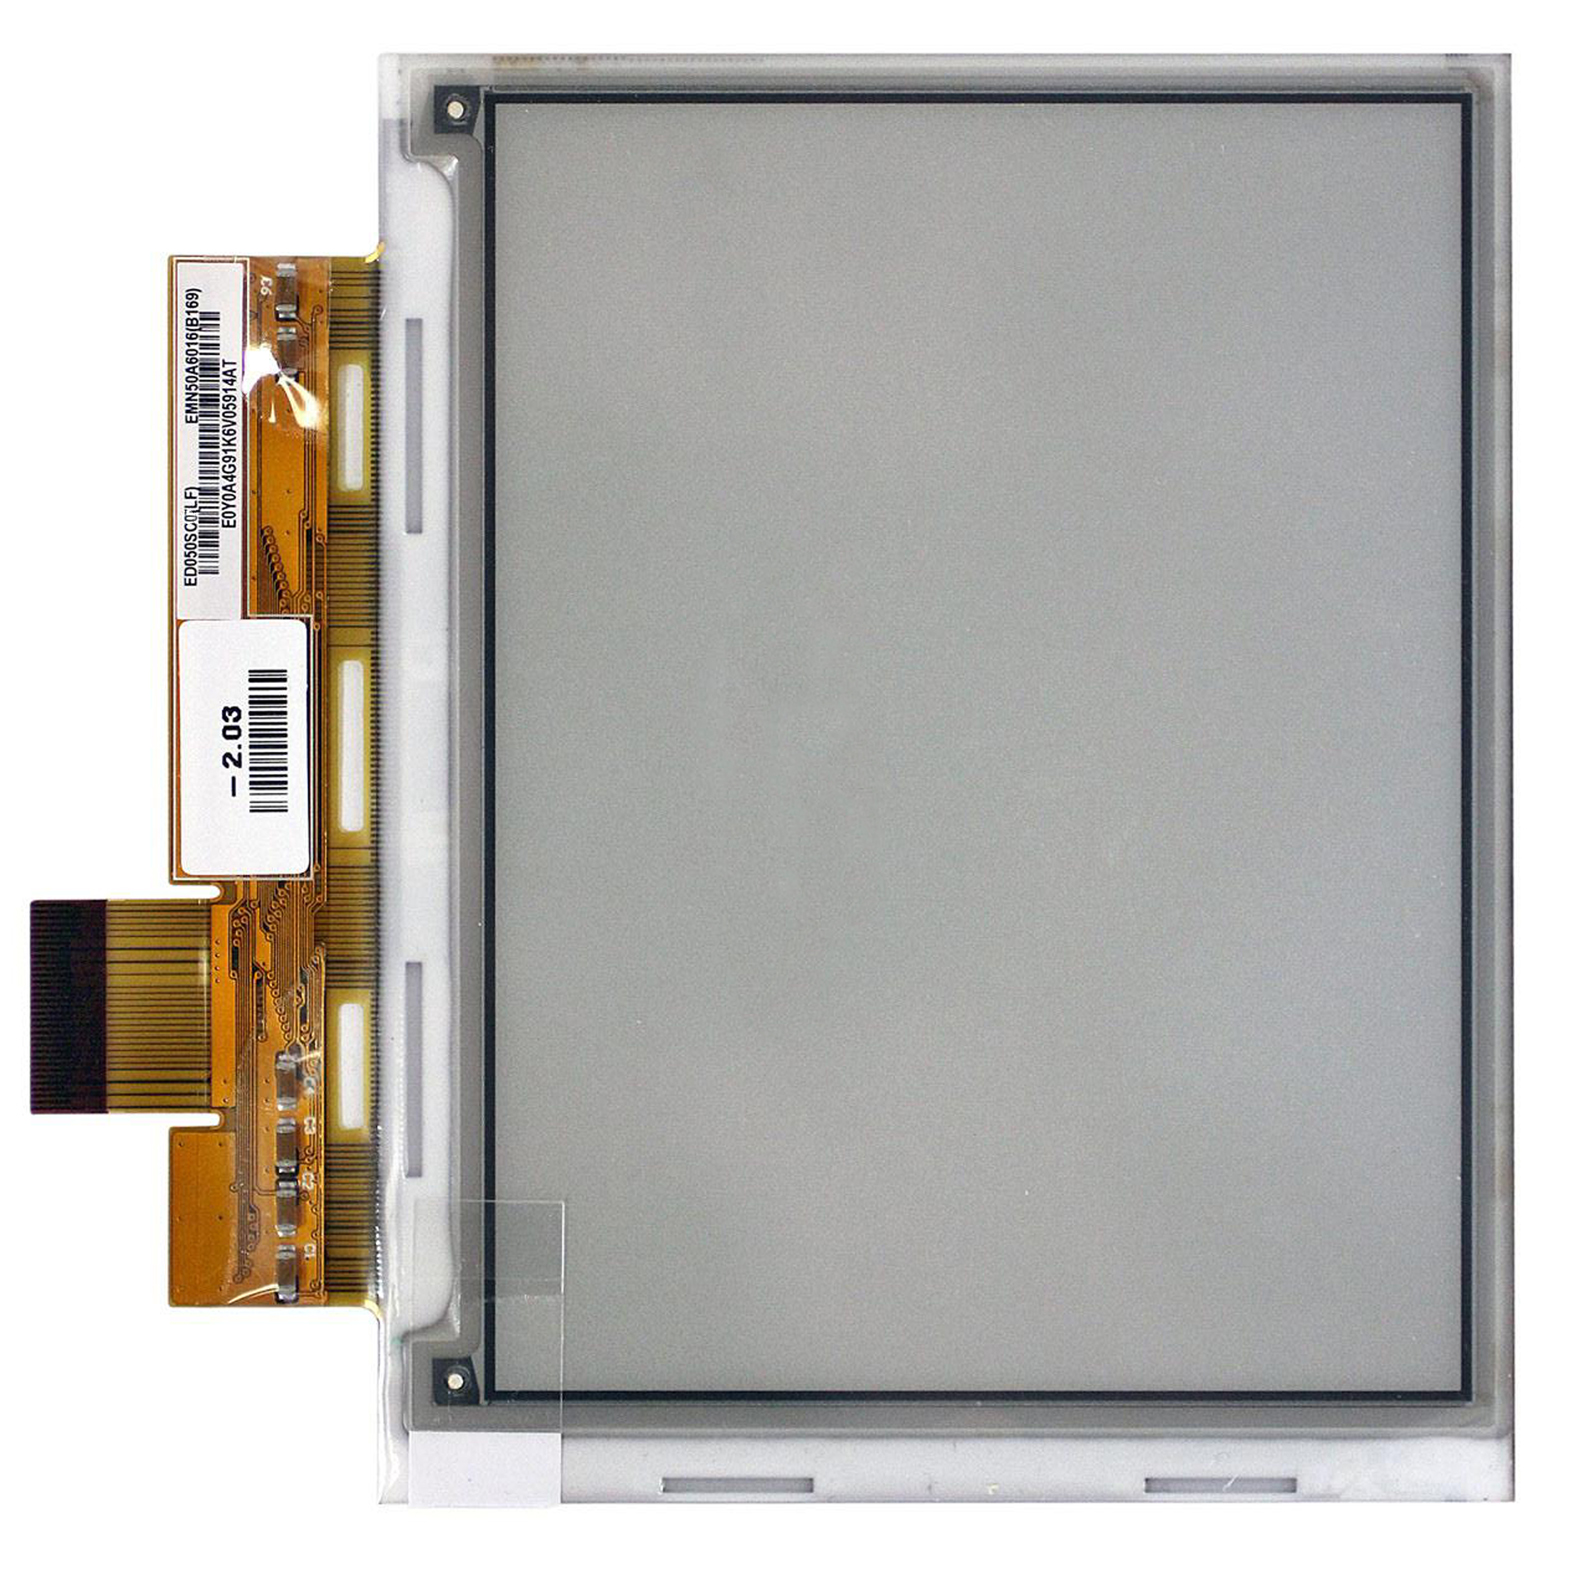 New PVI 5 inch ED050SC3(LF) Ebook screen Electronic ink display For Pocketbook 360; PRS-300 E-Readers screen